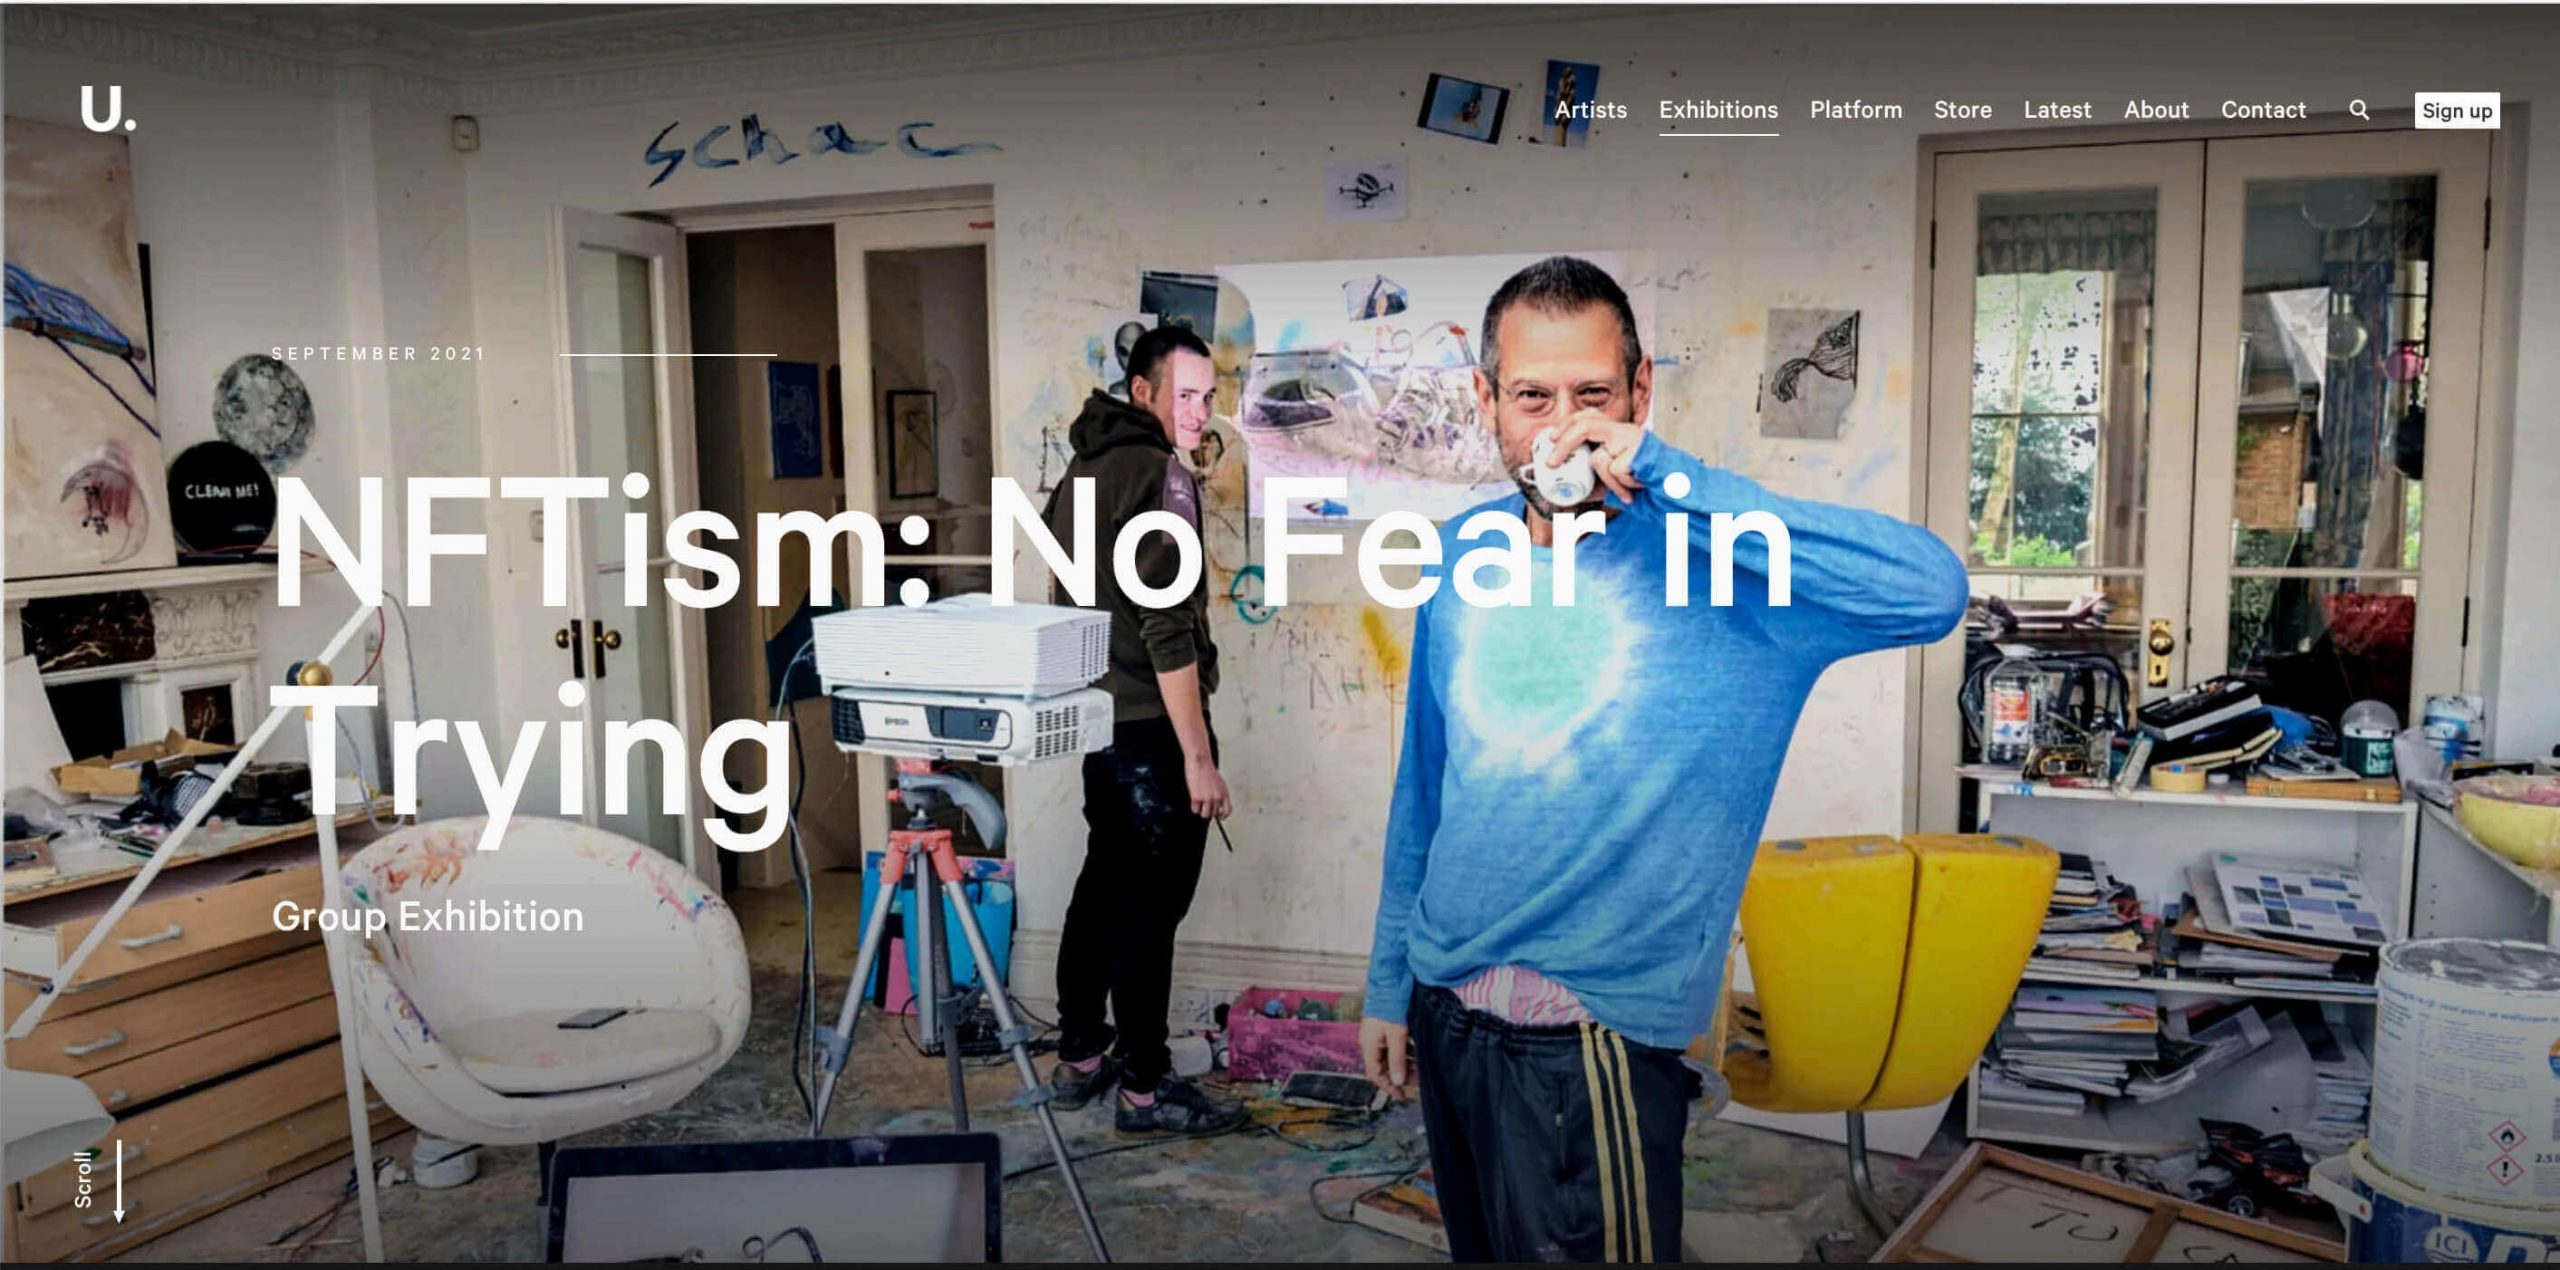 NFTism - No Fear in Trying at UnitLondon - Agora Digital Art